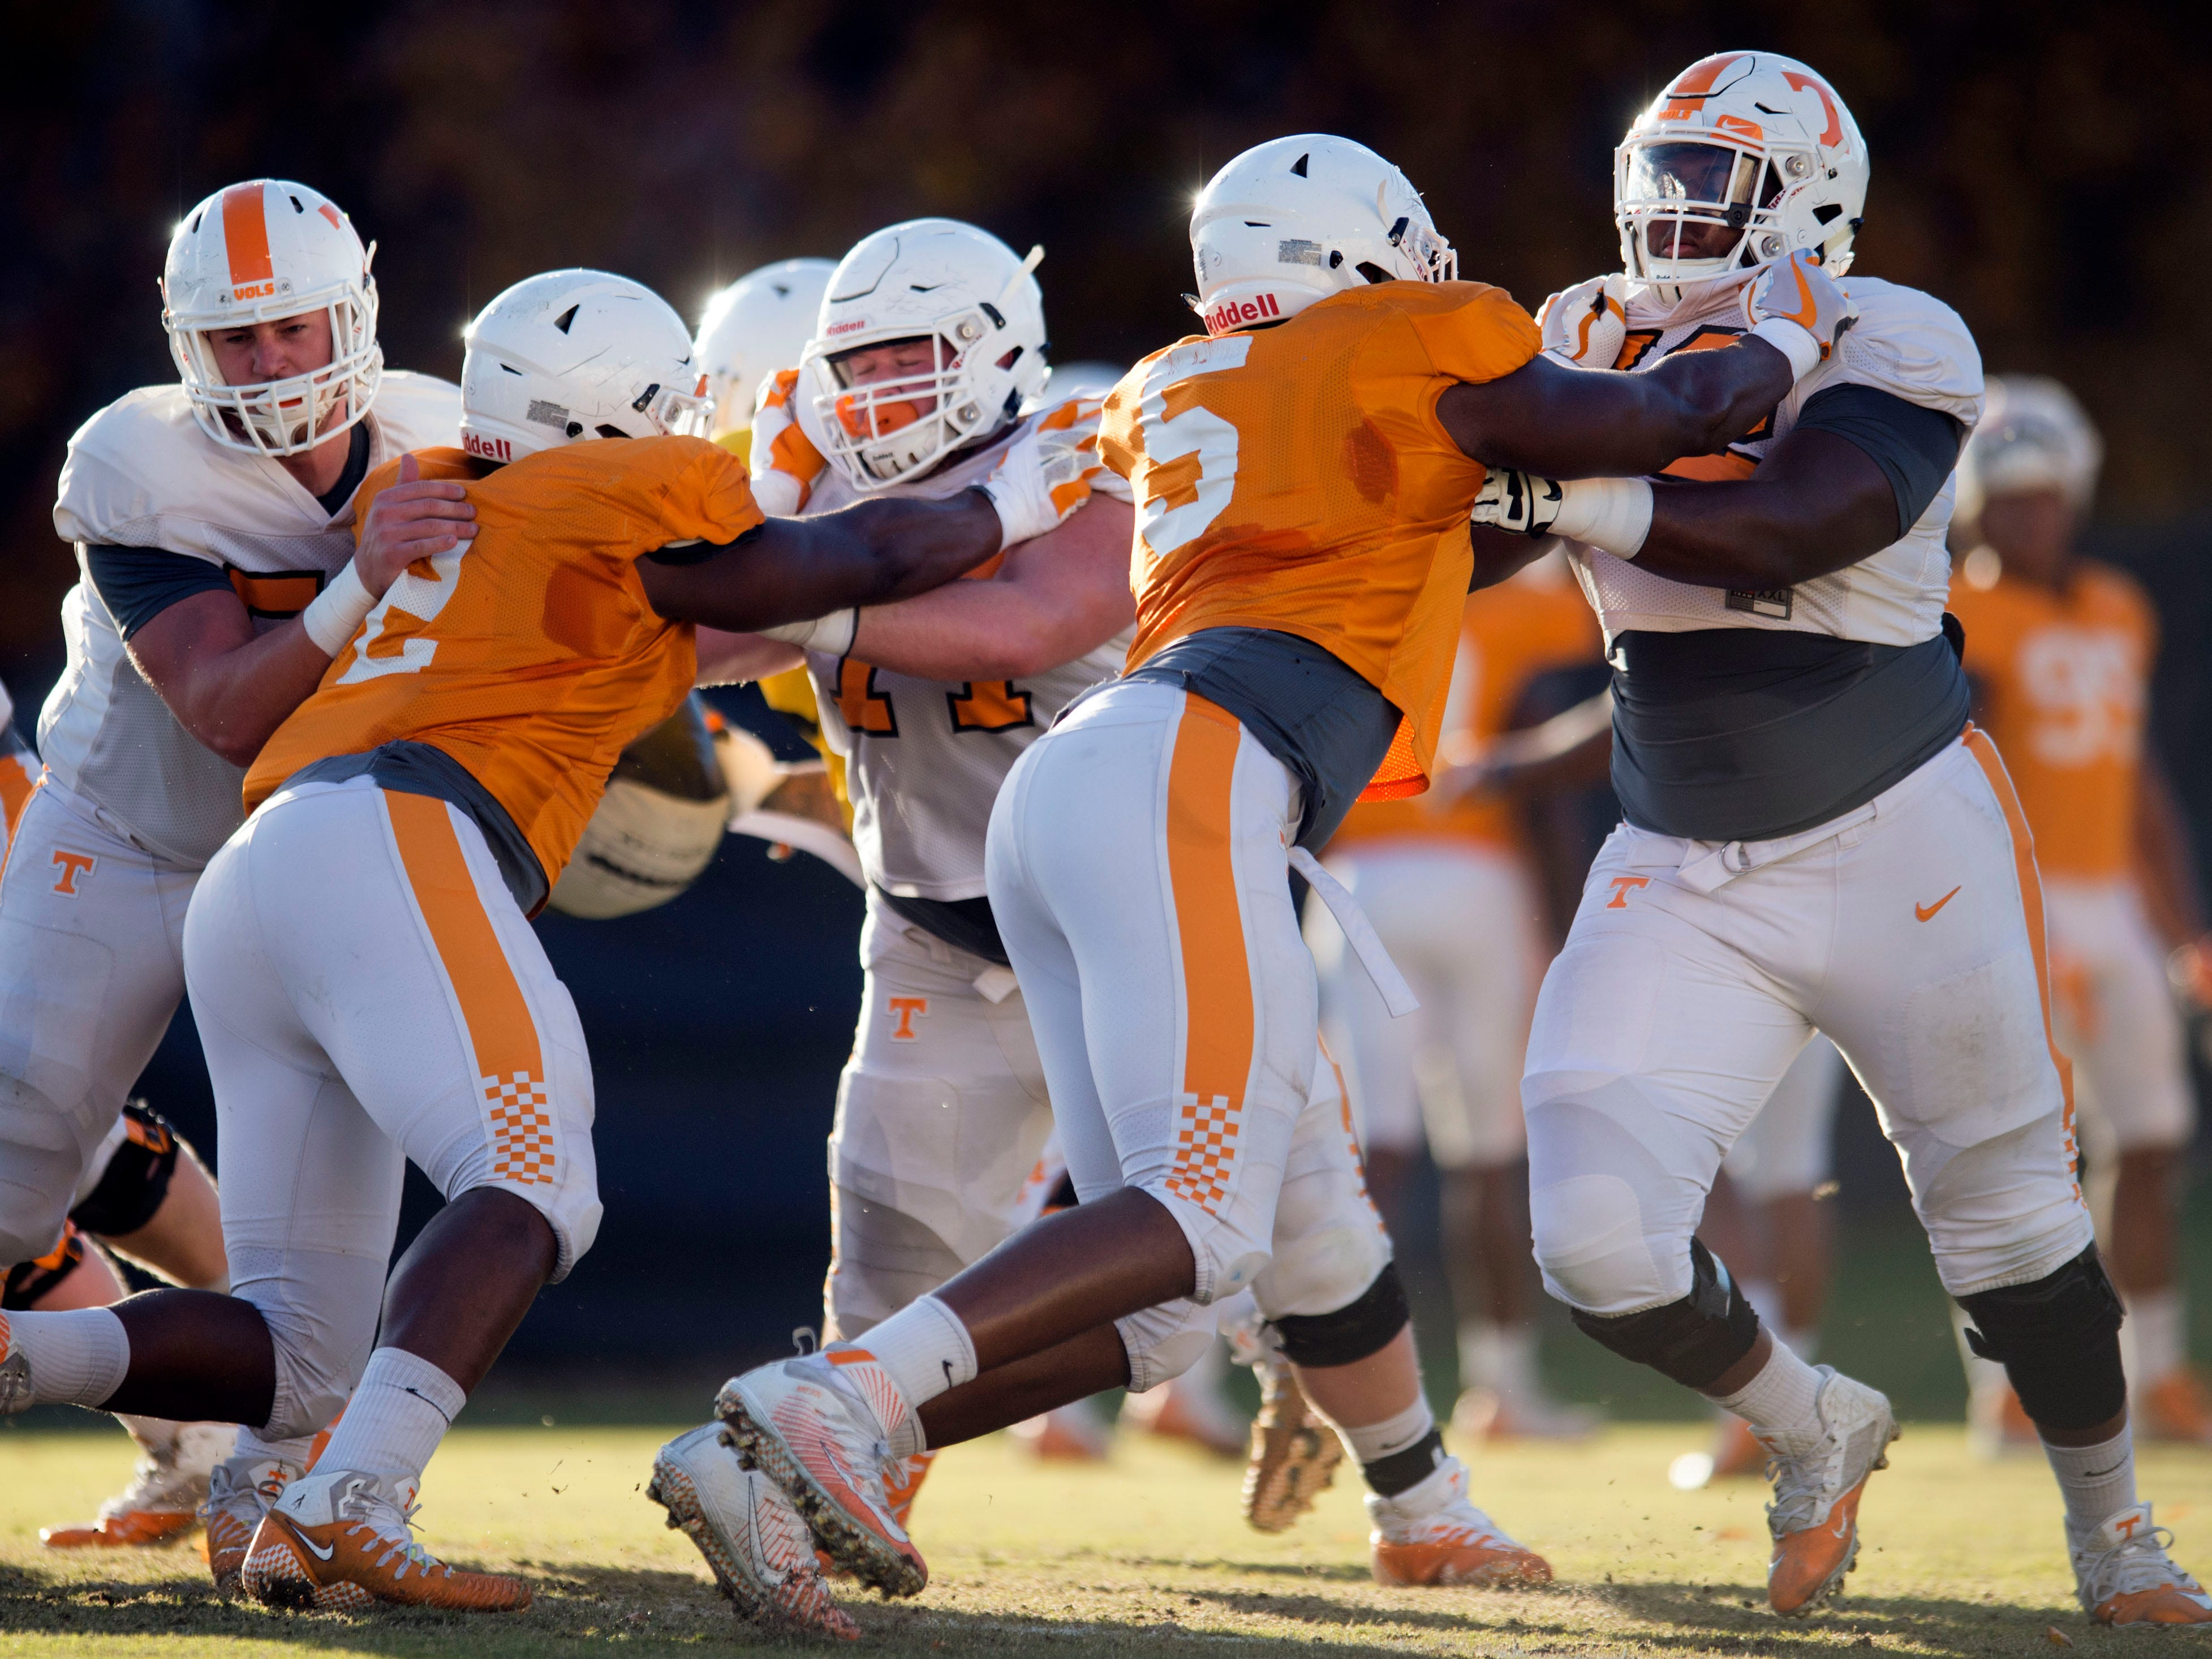 Tennessee linemen drill at football practice on Tuesday, November 6, 2018.